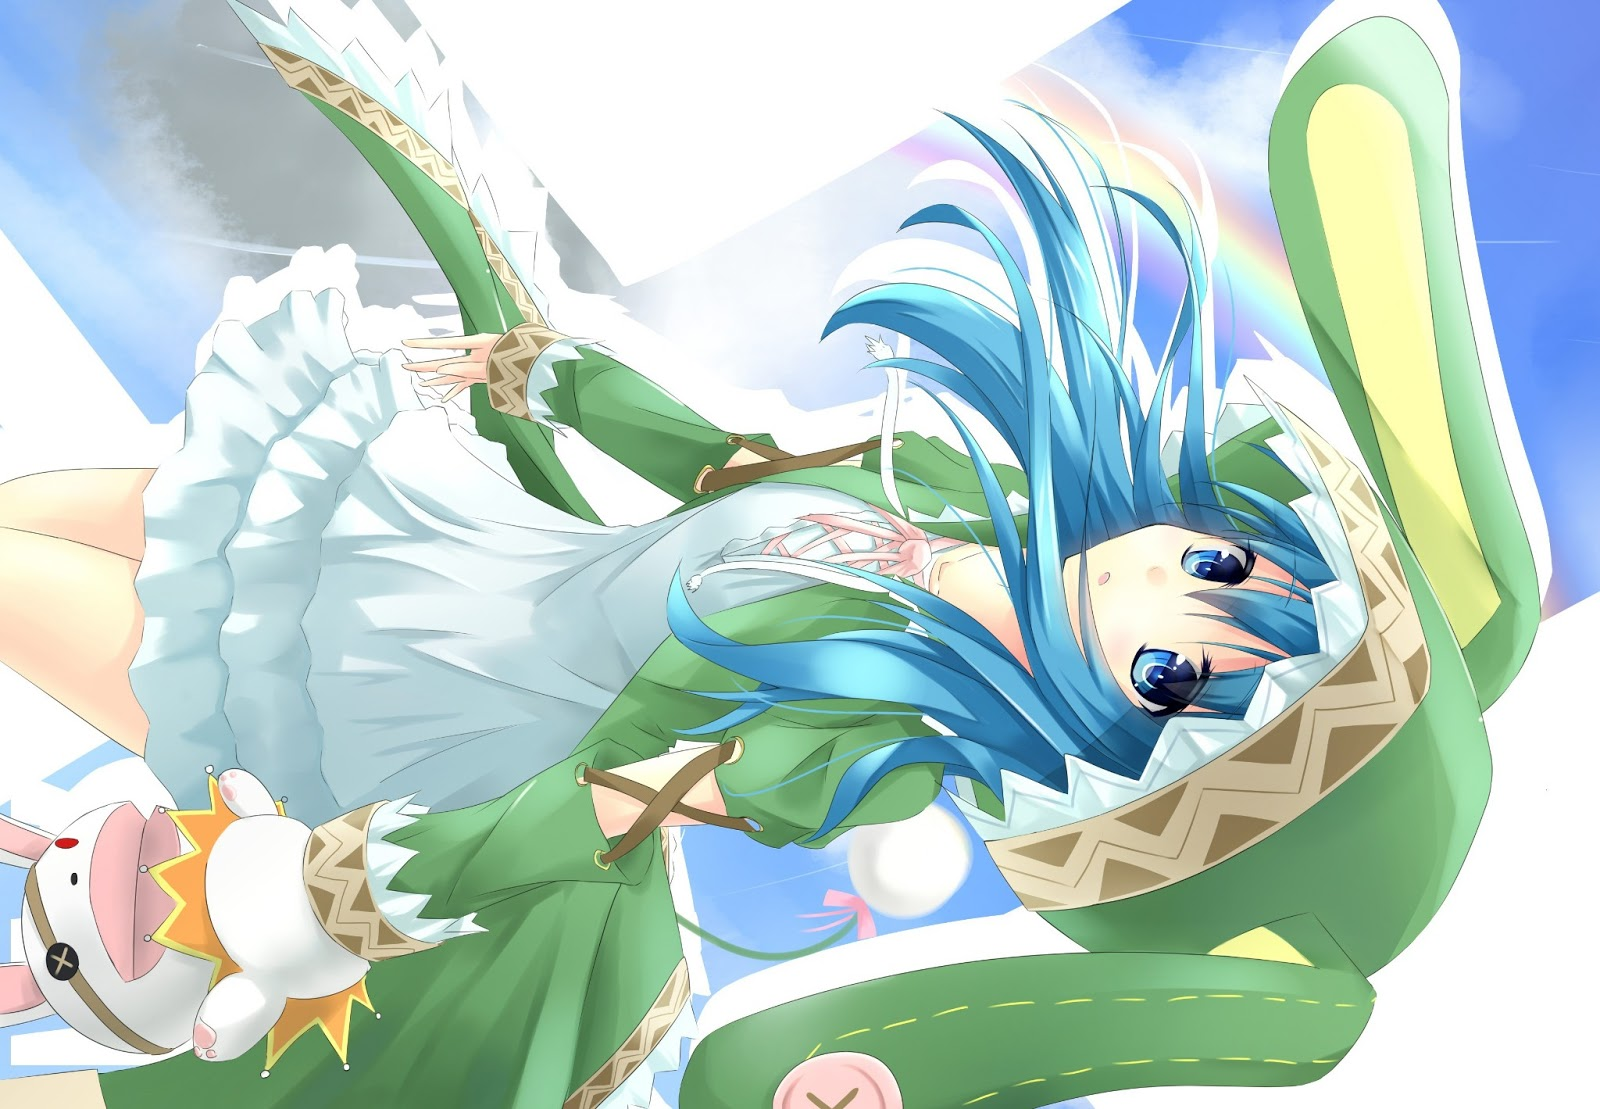 Anime Wallpaper Girls With Glasses Download Date A Live Yoshino Wallpaper Gallery